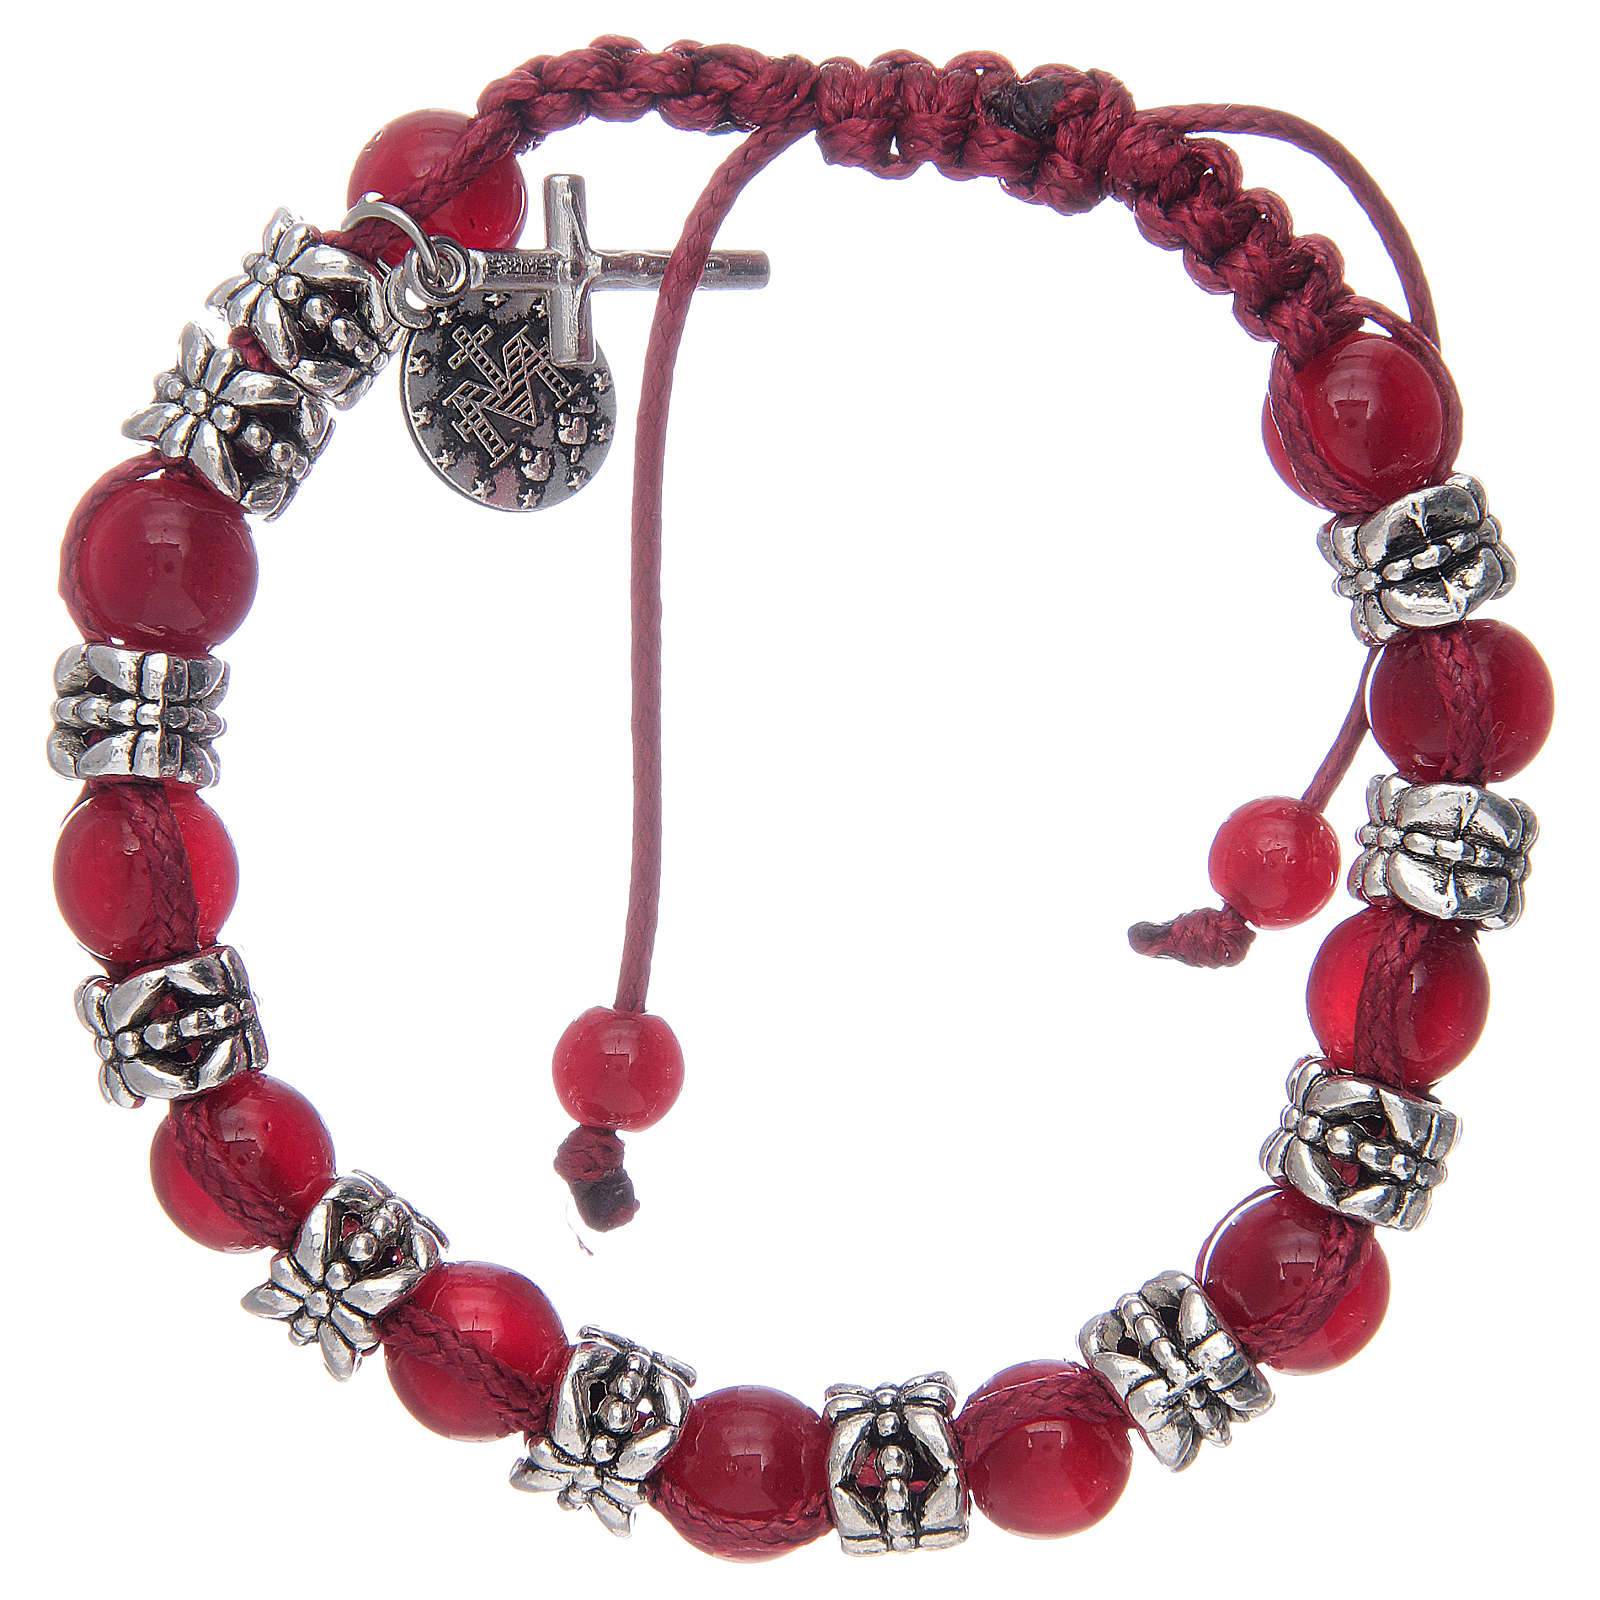 Bracelet with glass grains 8 mm on red cord 4